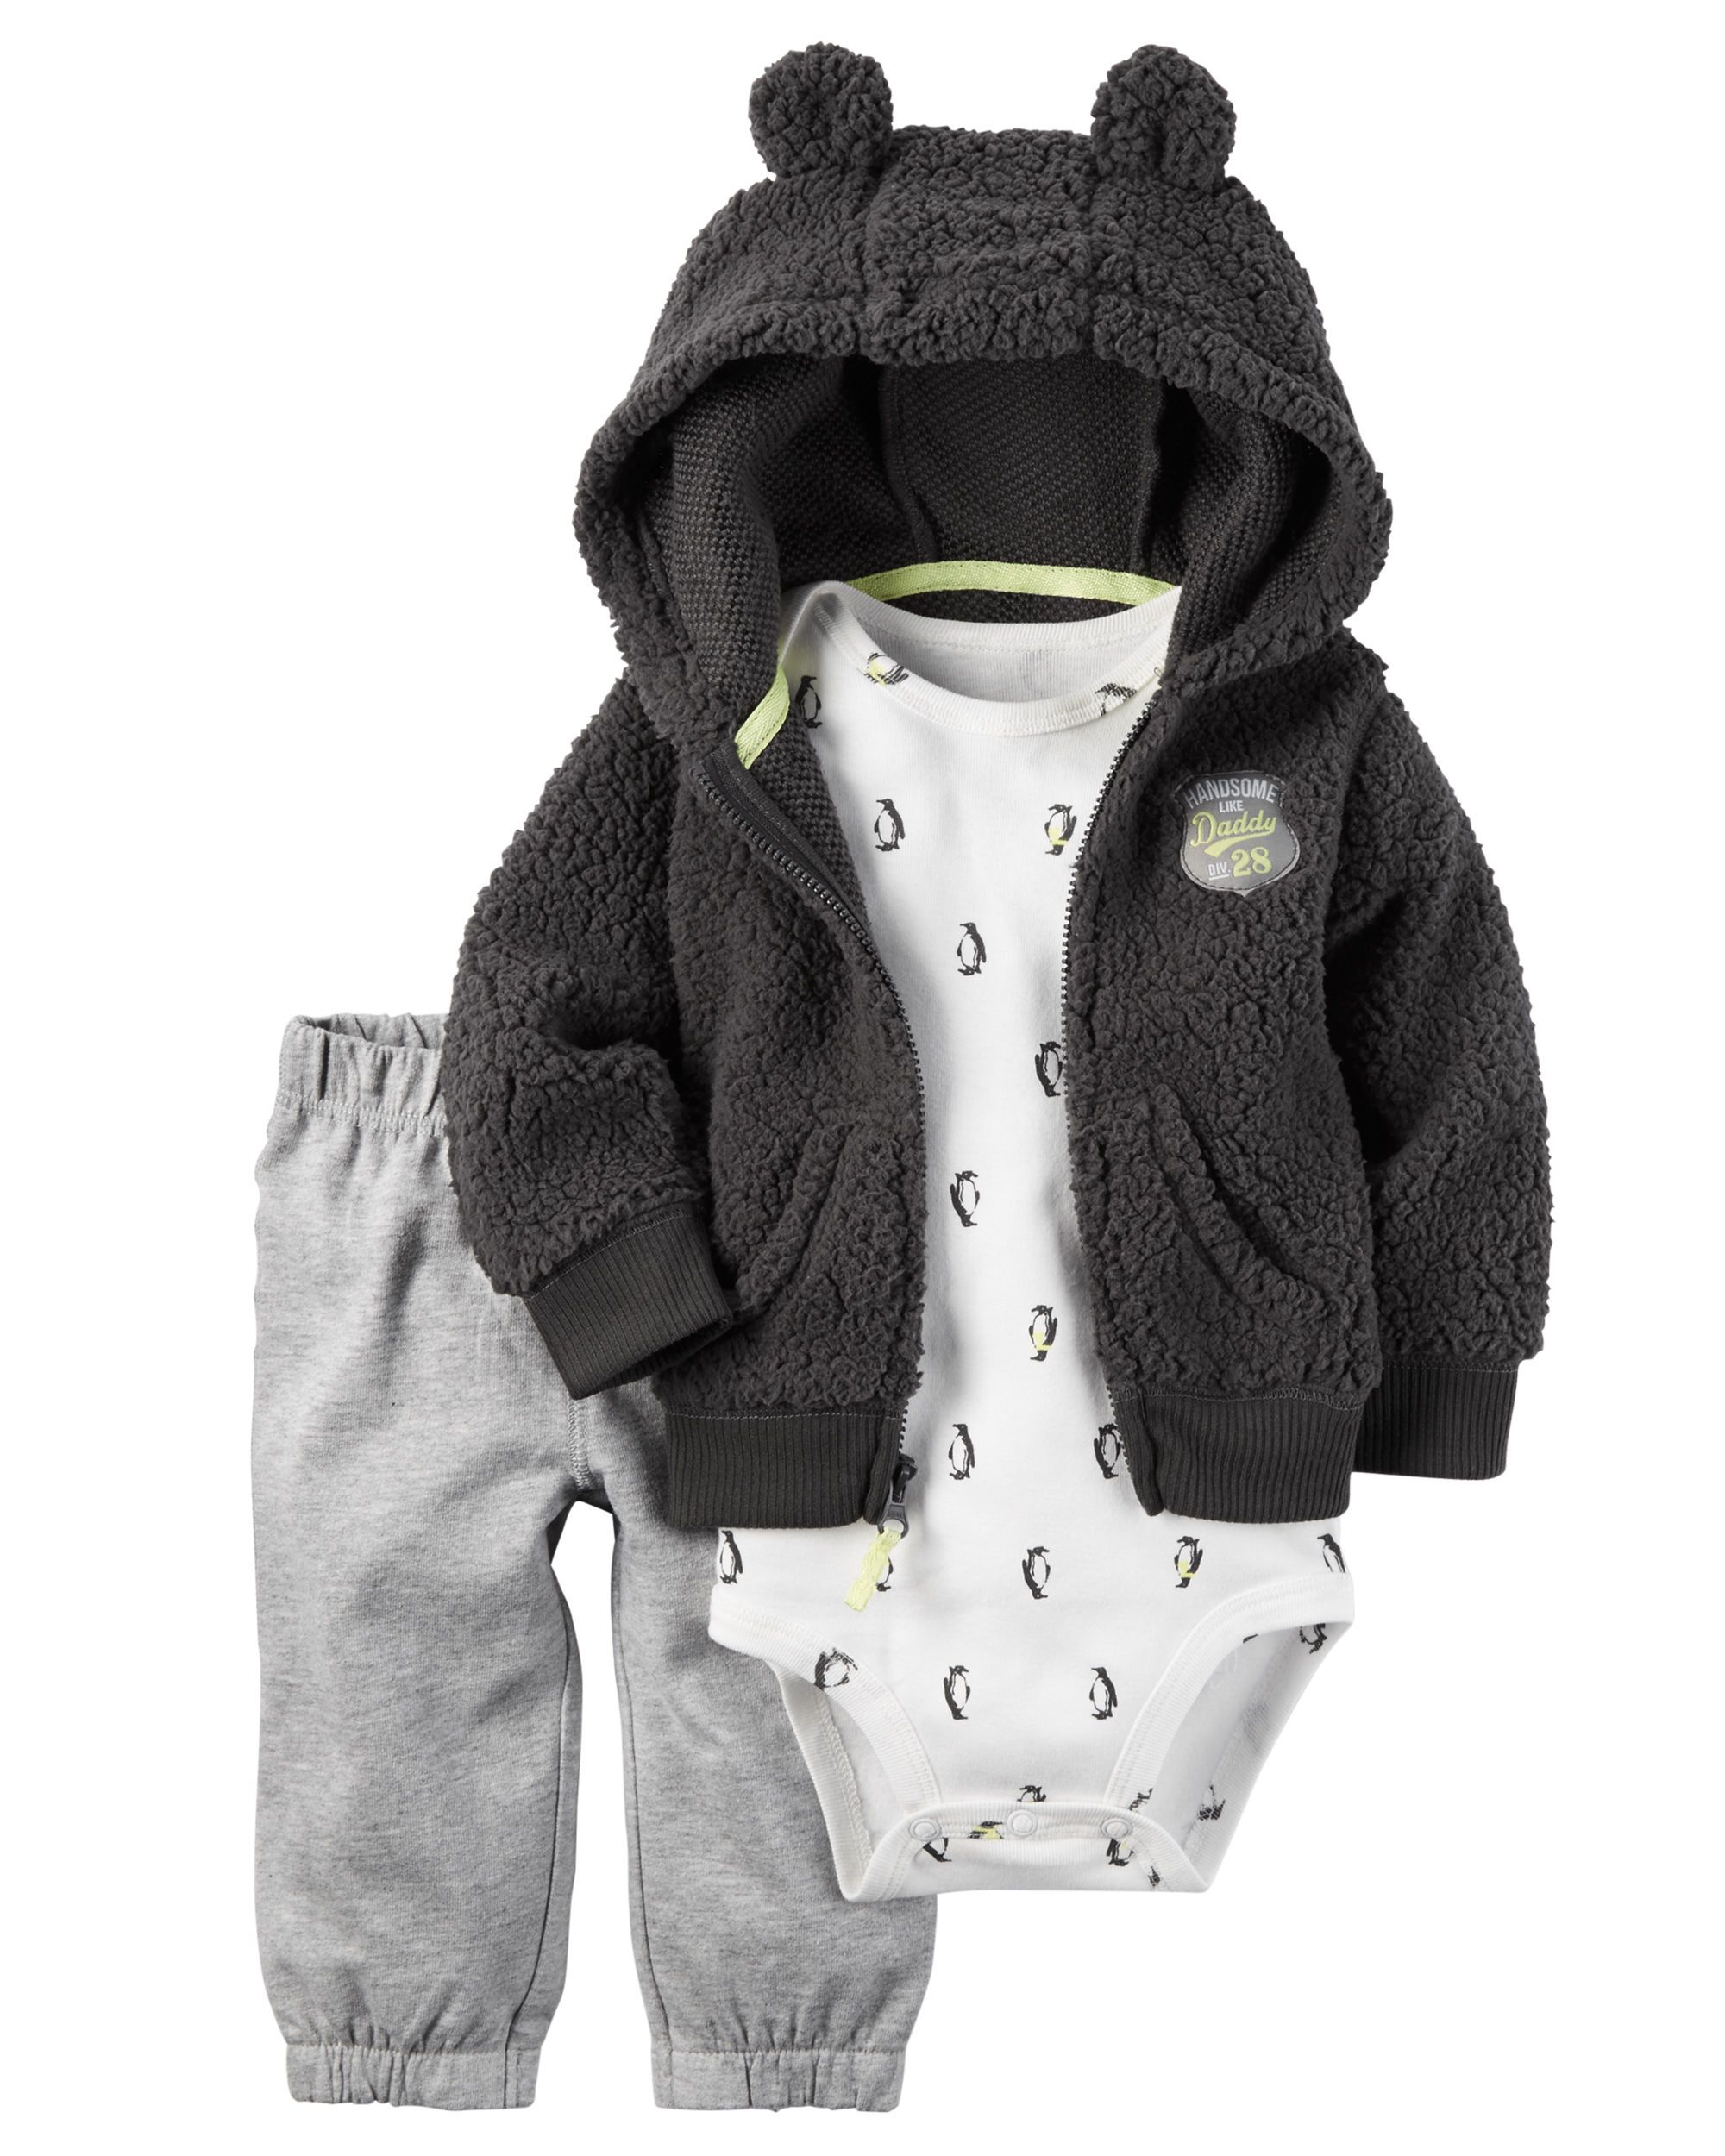 Crafted in plush snow fleece with a cozy animal ear hood, this jacket set is complete with a soft cotton bodysuit and French terry pants.